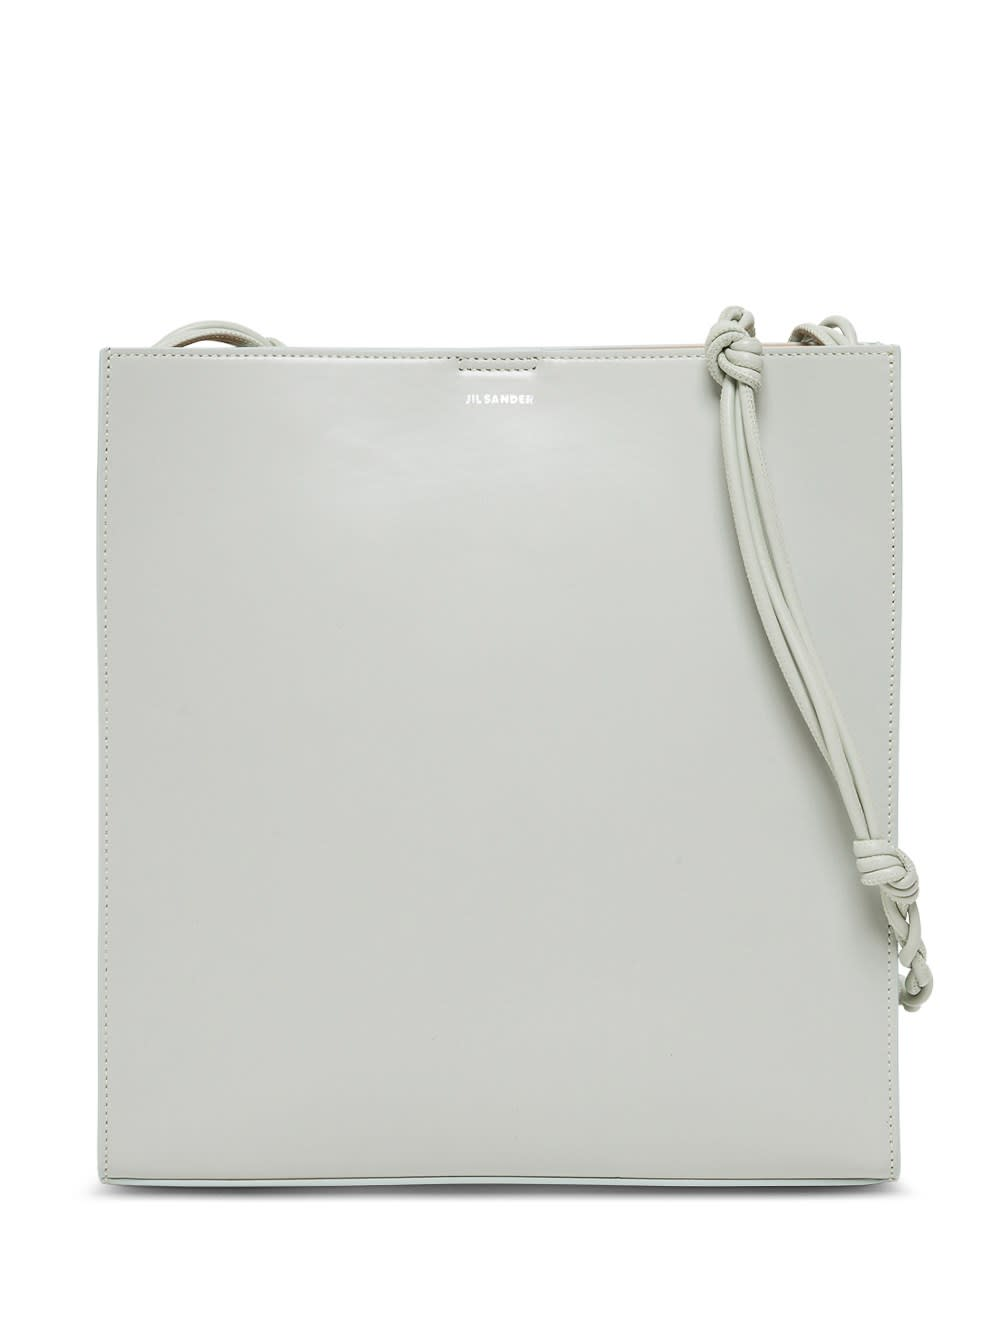 Jil Sander Tangle Crossbody Bag In Sage Colored Leather In Green